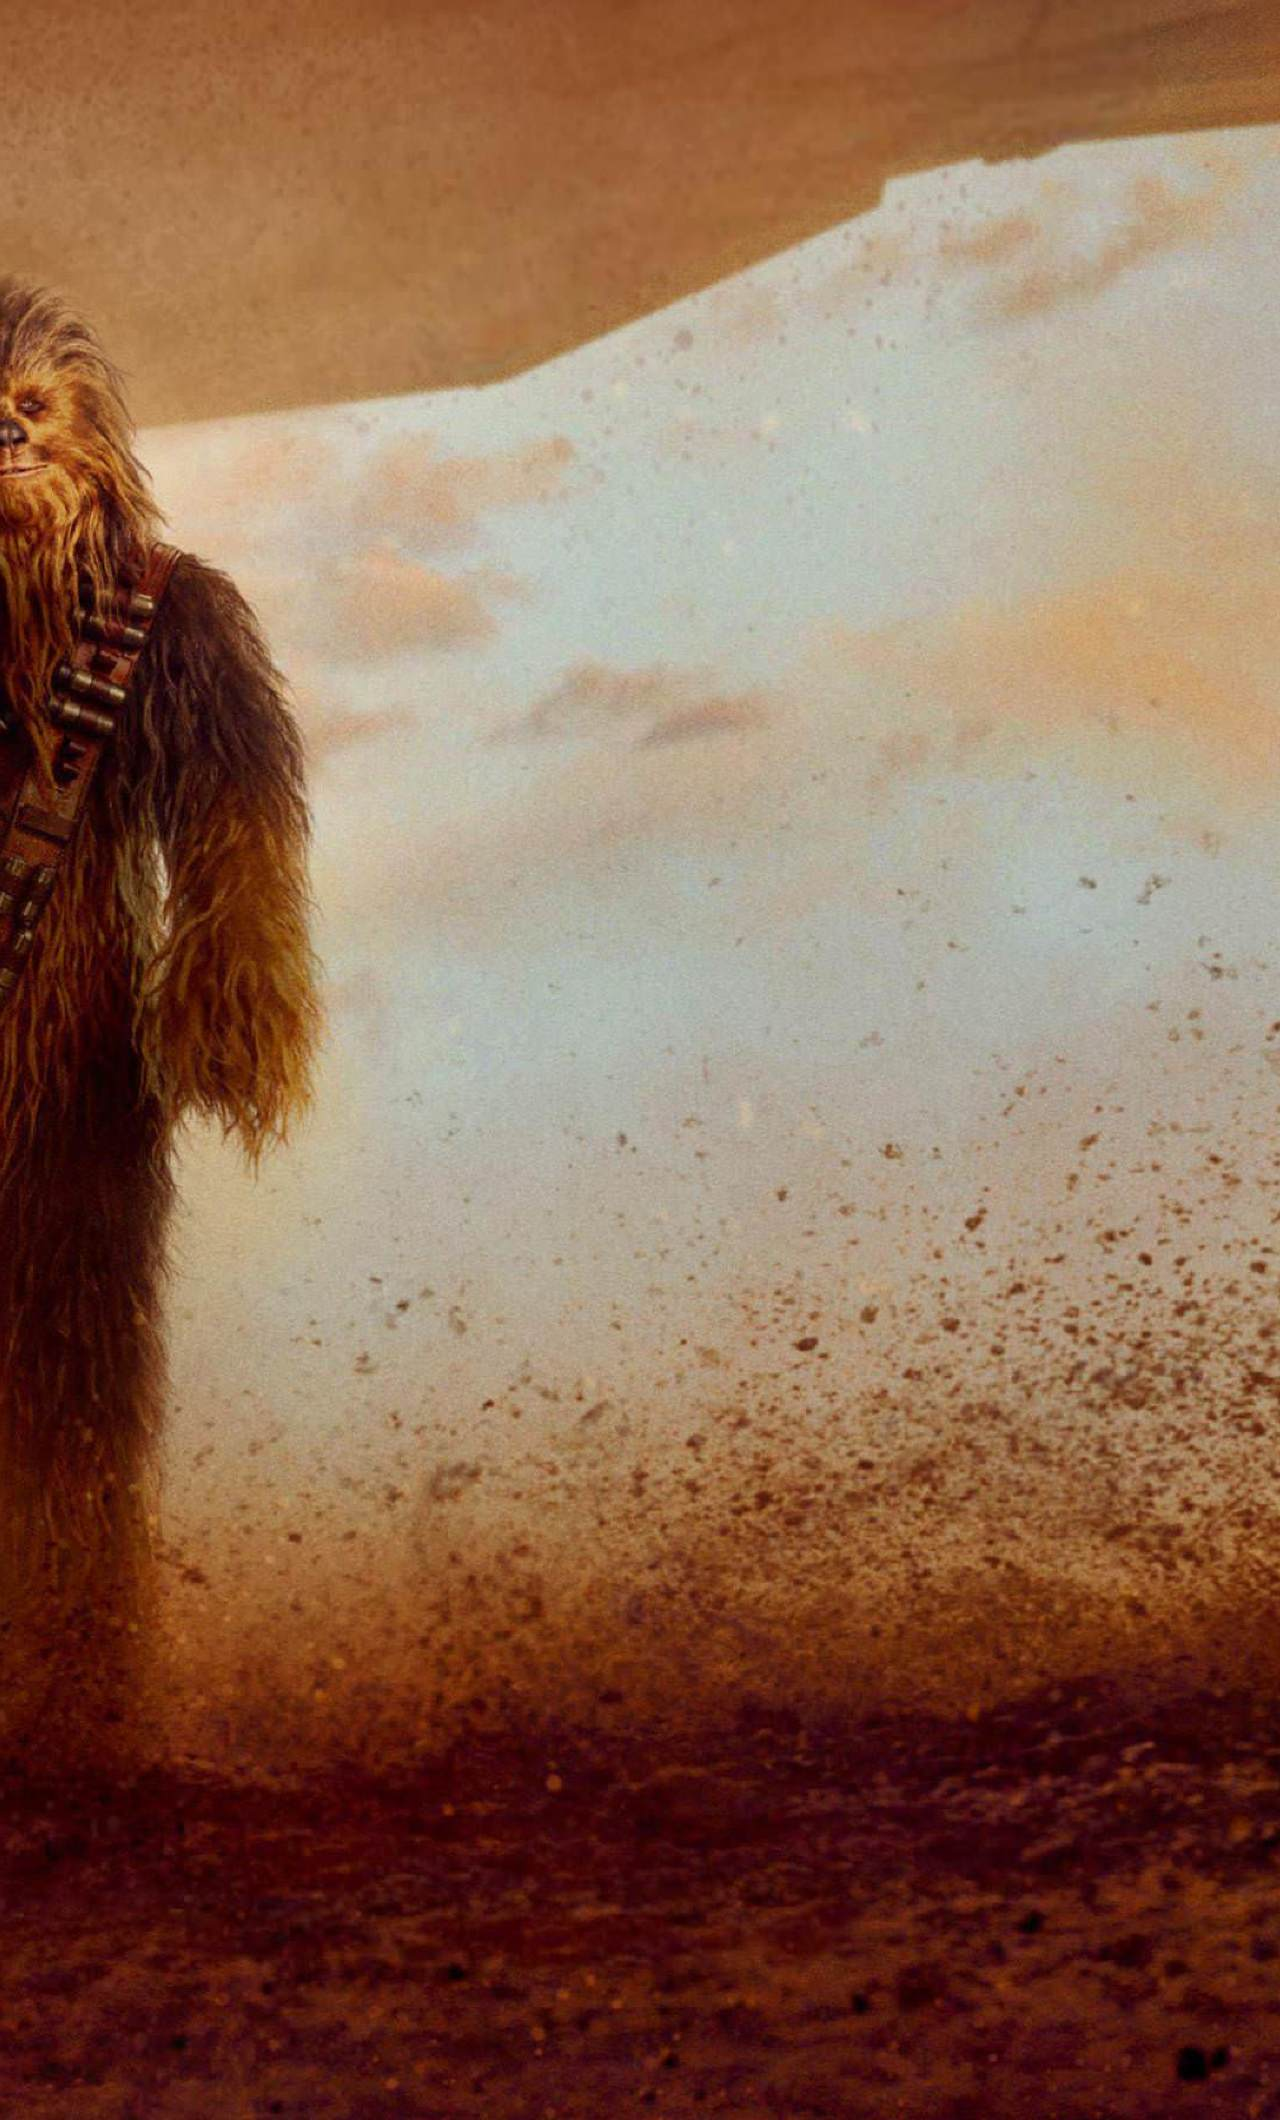 1280x2120 Han Solo And Chewbacca In Solo A Star Wars Story Iphone 6 Plus Wallpaper Hd Movies 4k Wallpapers Images Photos And Background